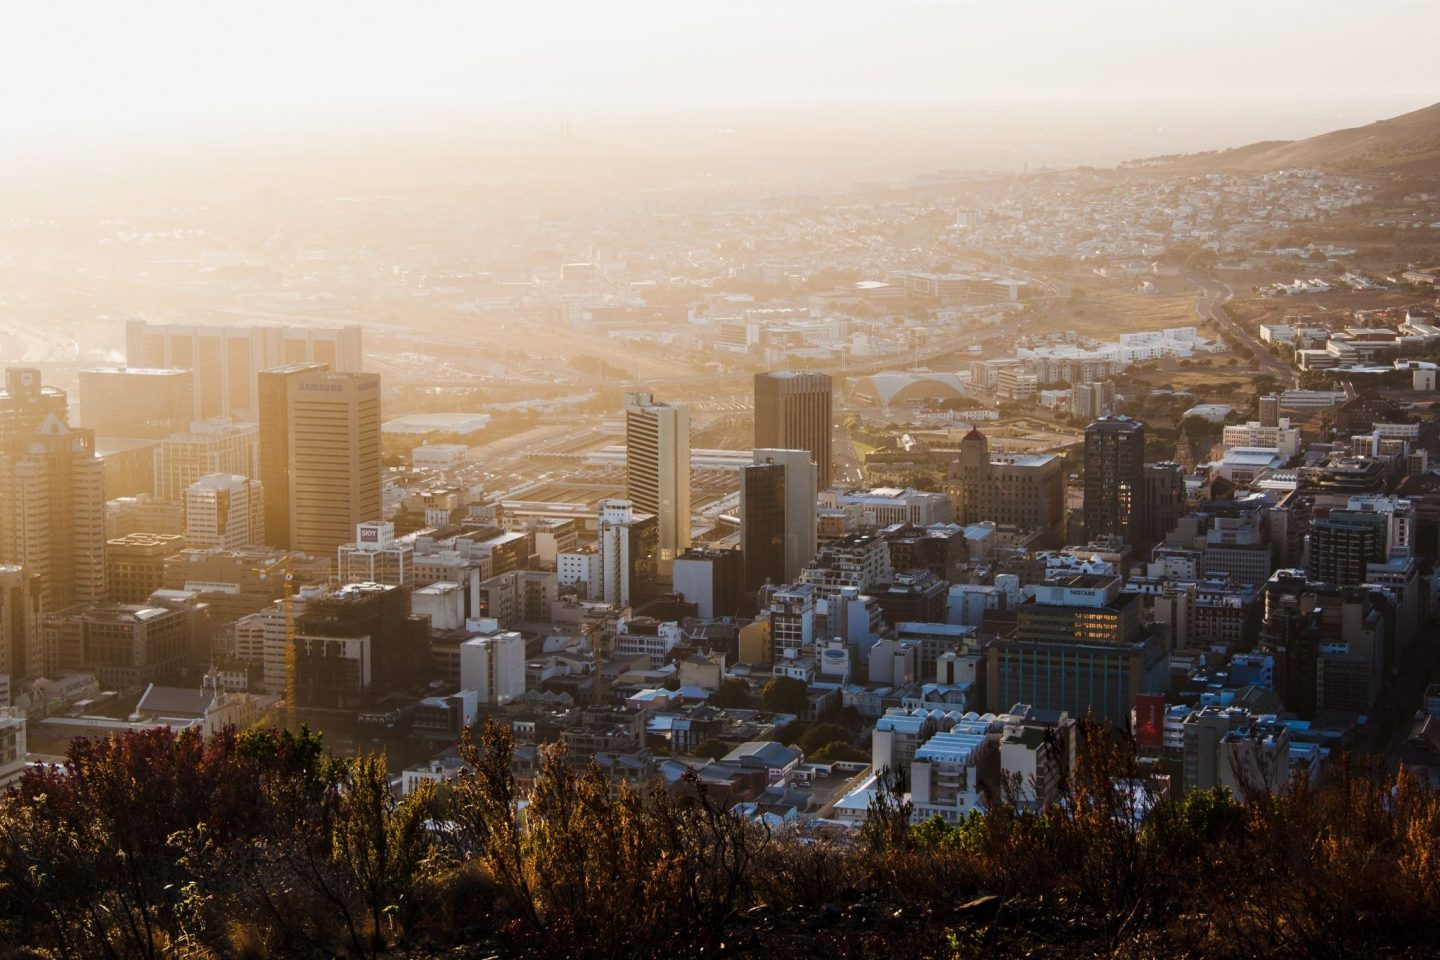 MAKING THE MOST OF YOUR SOUTH AFRICAN ADVENTURE